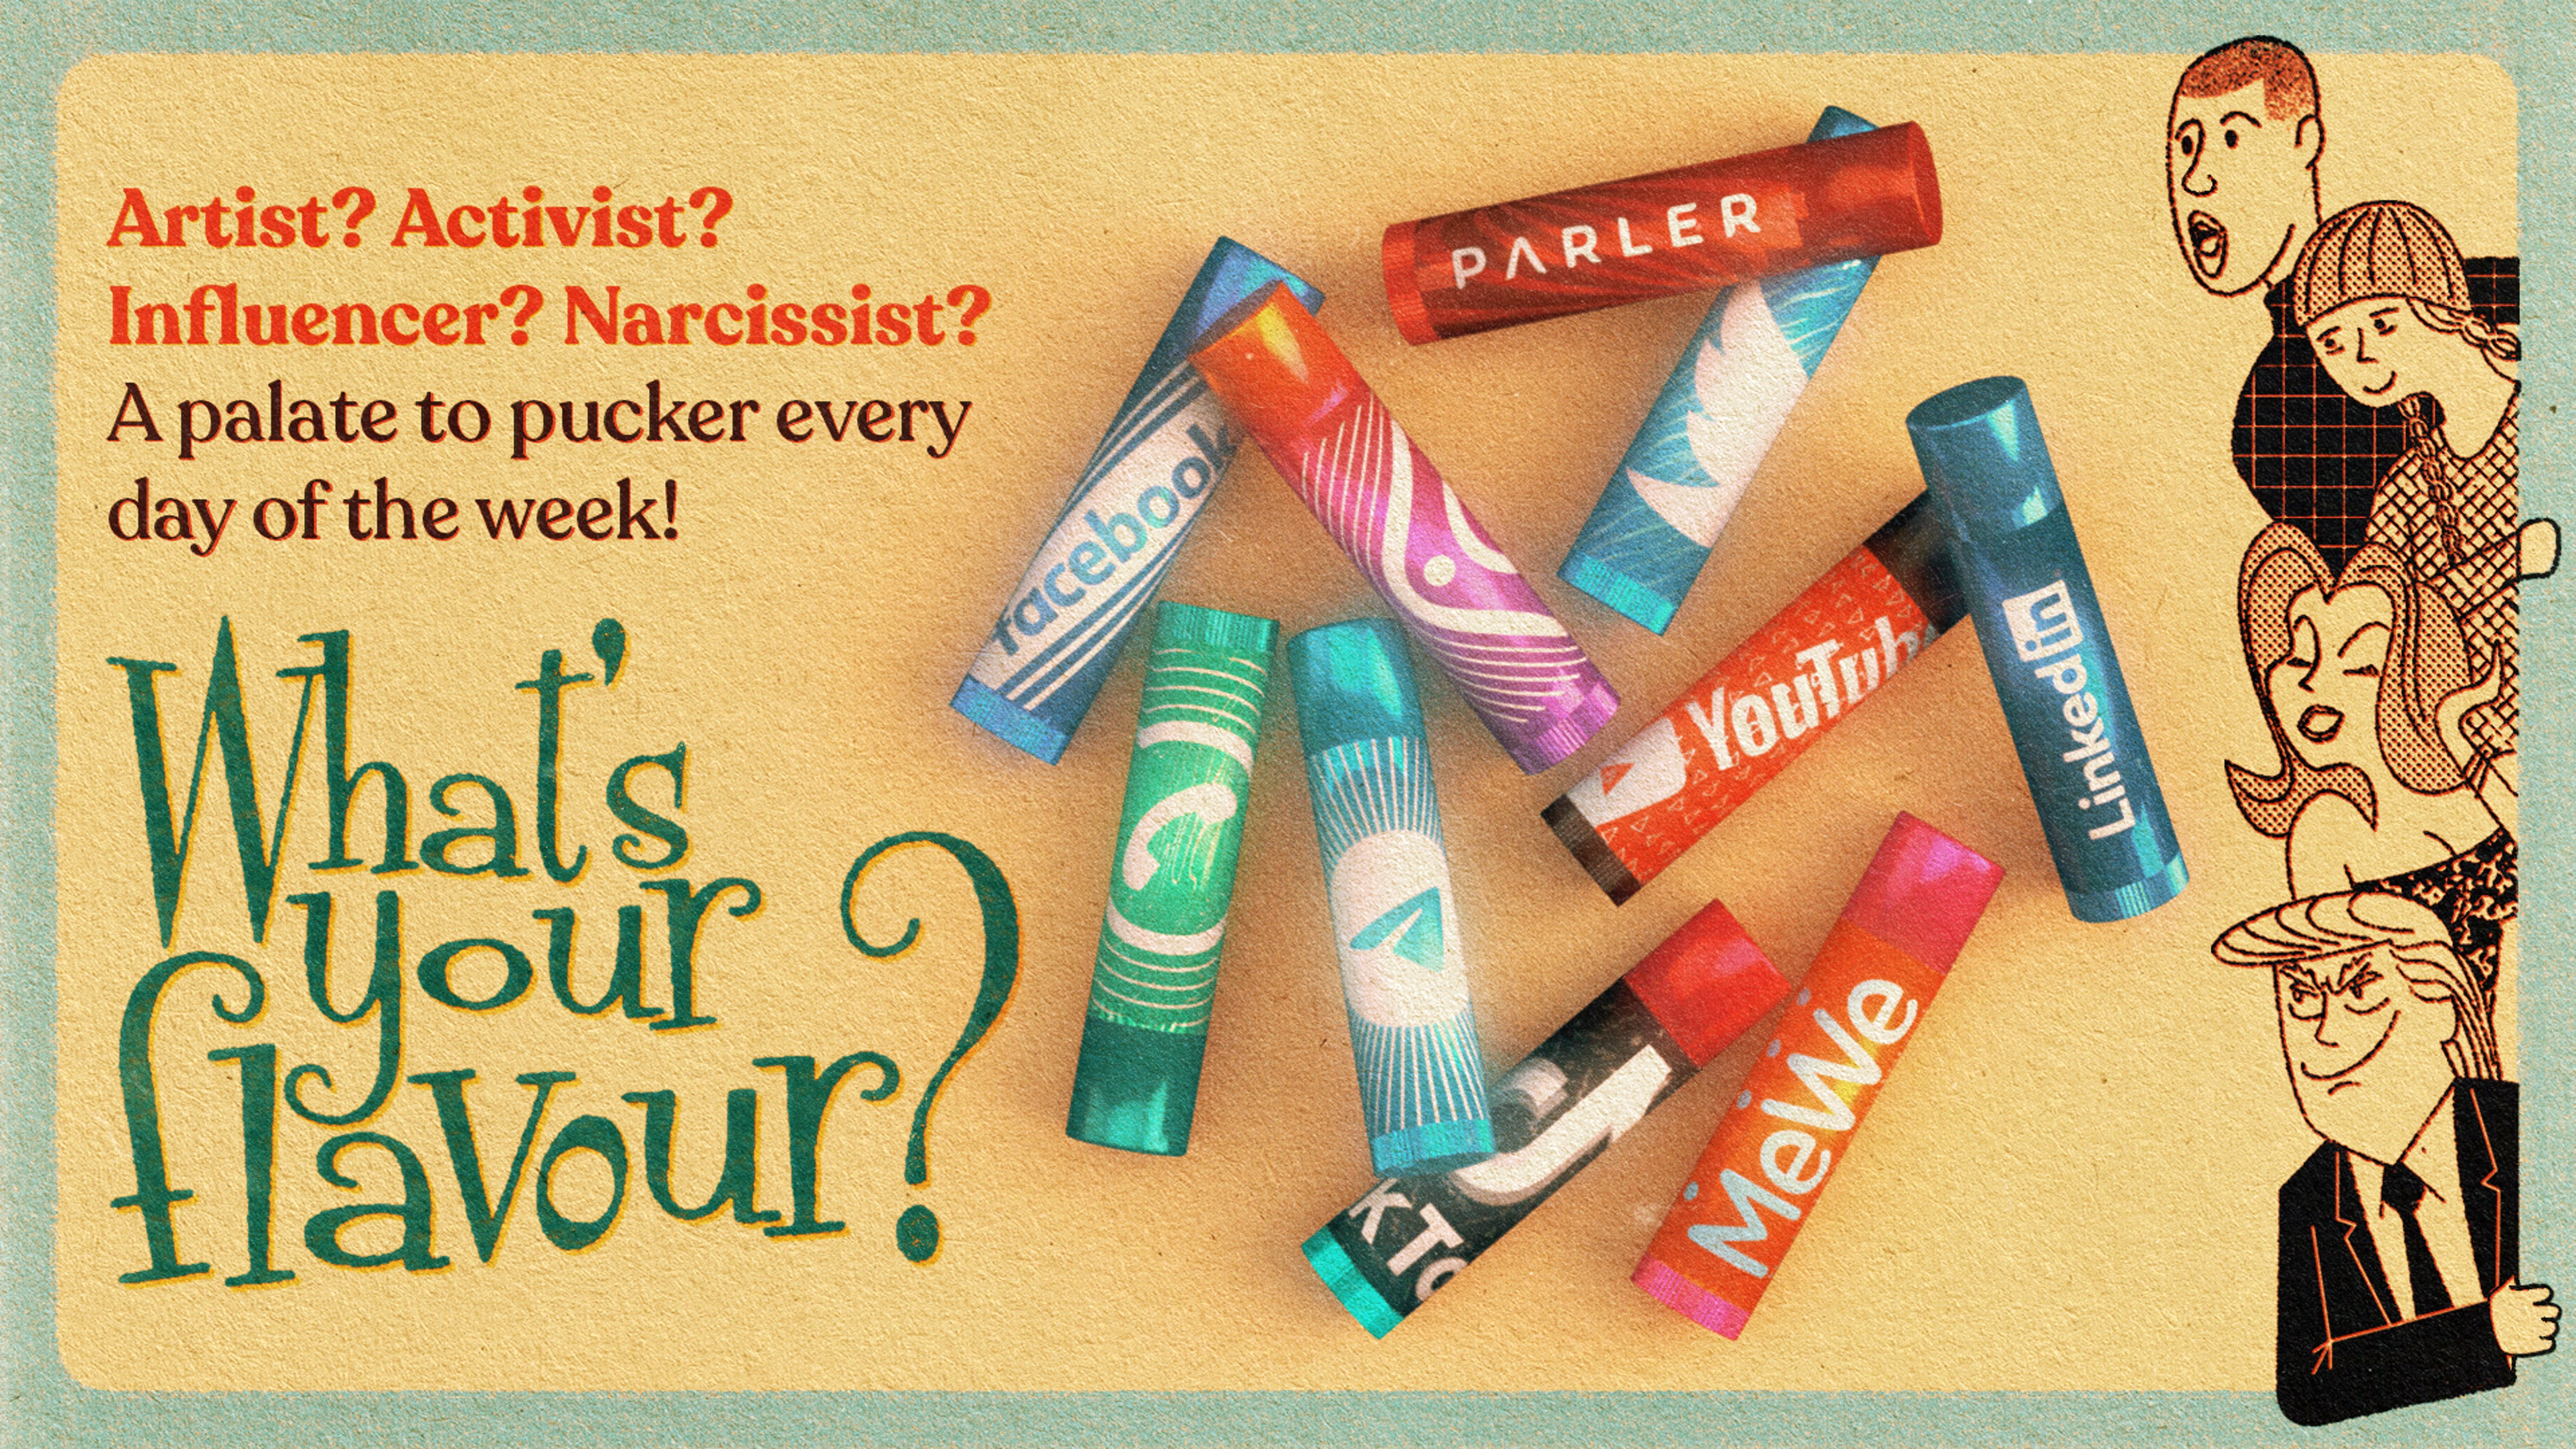 An image, inspired by vintage advertising, featuring social media as various flavours of lip balm. Text reads: What's your flavour? Artist? Activist? Influencer? Narcissist? A palate to pucker ever day of the week!